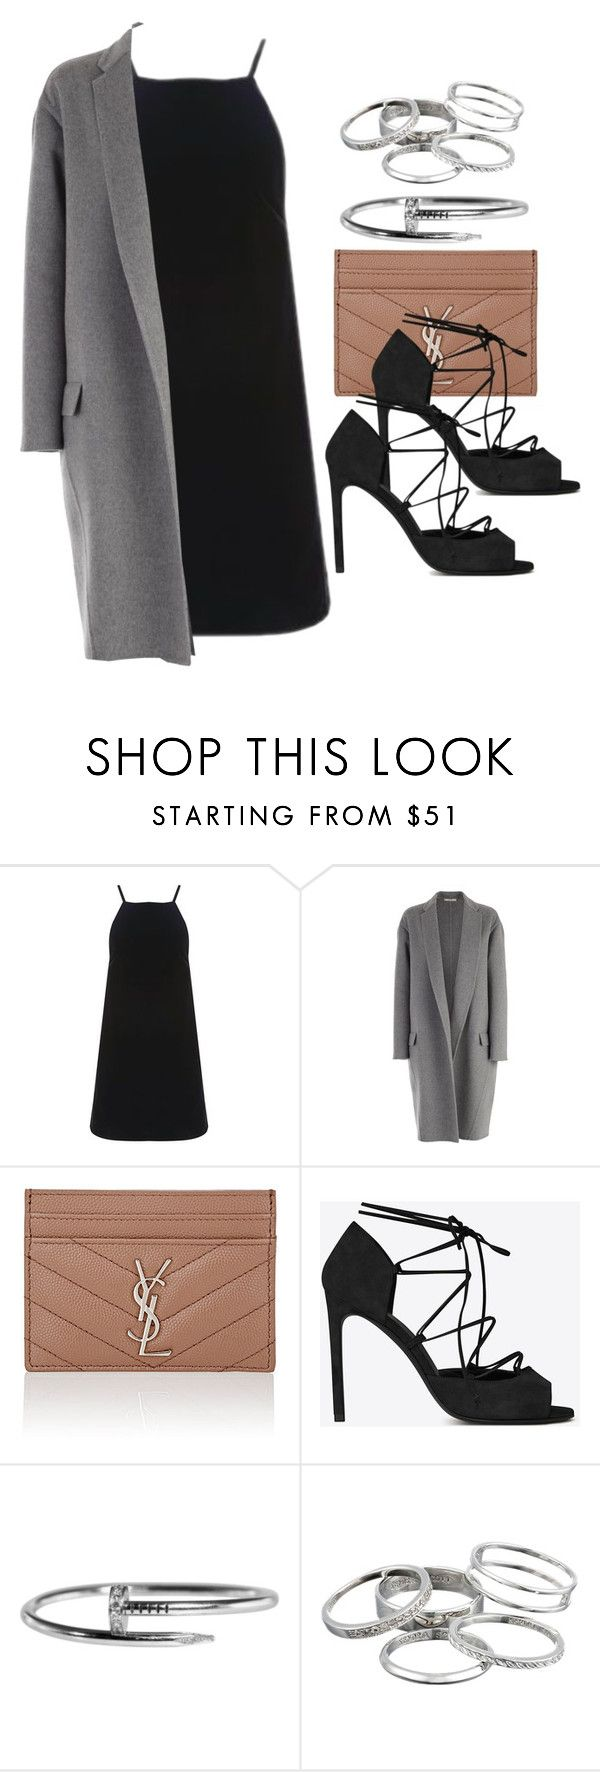 """""""Style #11757"""" by vany-alvarado ❤ liked on Polyvore featuring Topshop, CÉLINE, Yves Saint Laurent and Kendra Scott"""